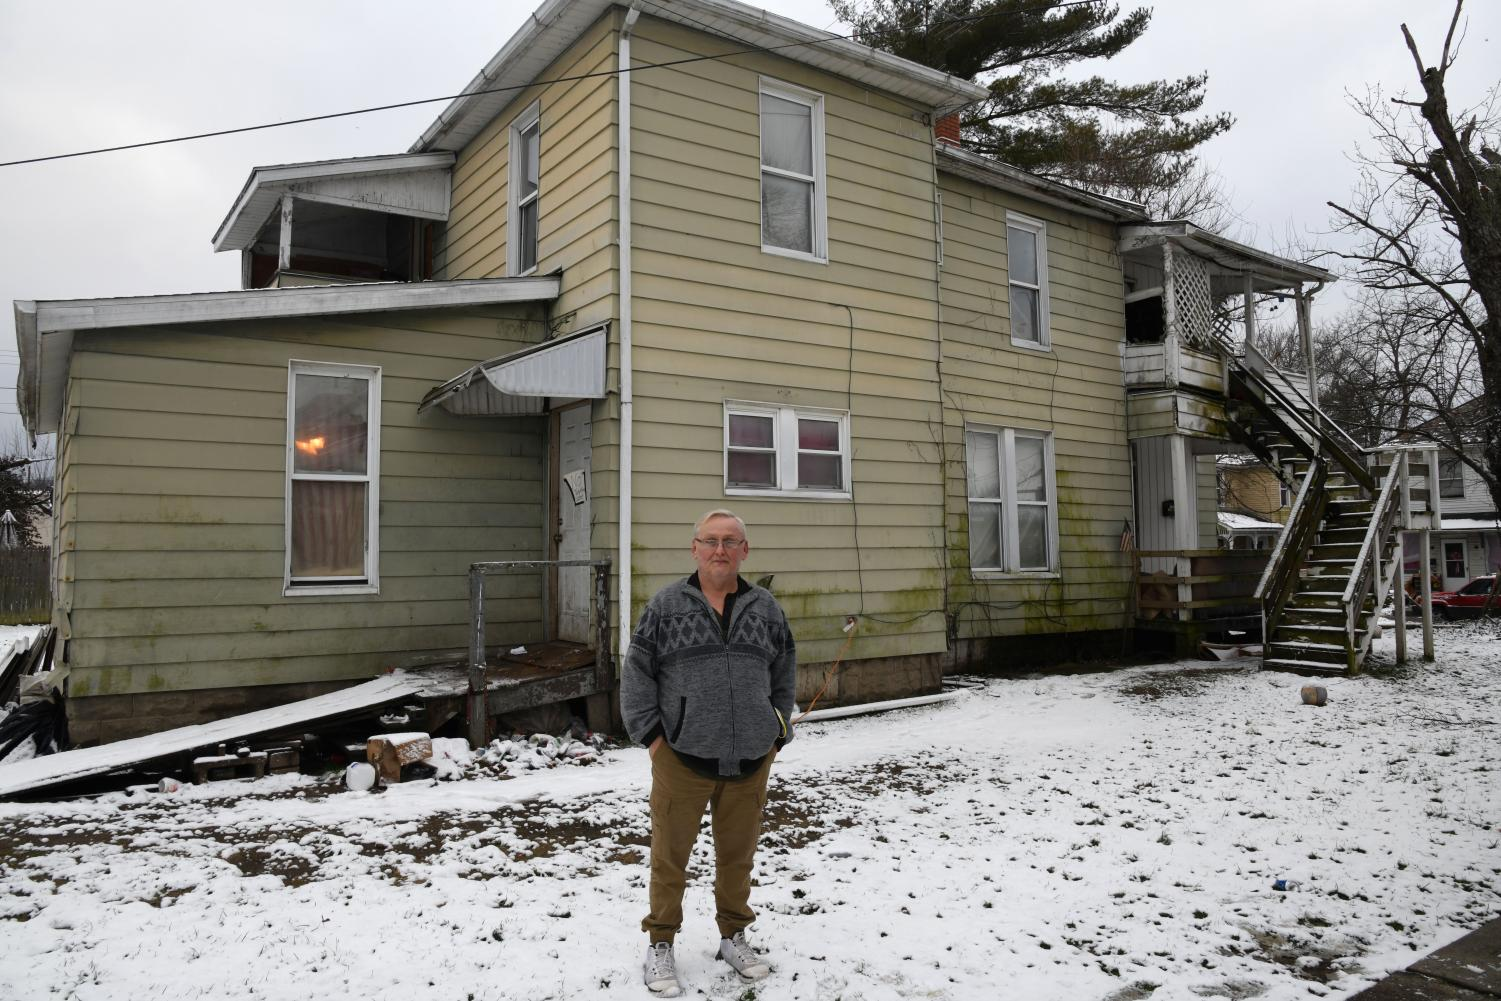 Clarence May has lived next door to a nuisance property for more than a decade. When the neighbors threw human waste out a side entrance, that was the breaking point for May.